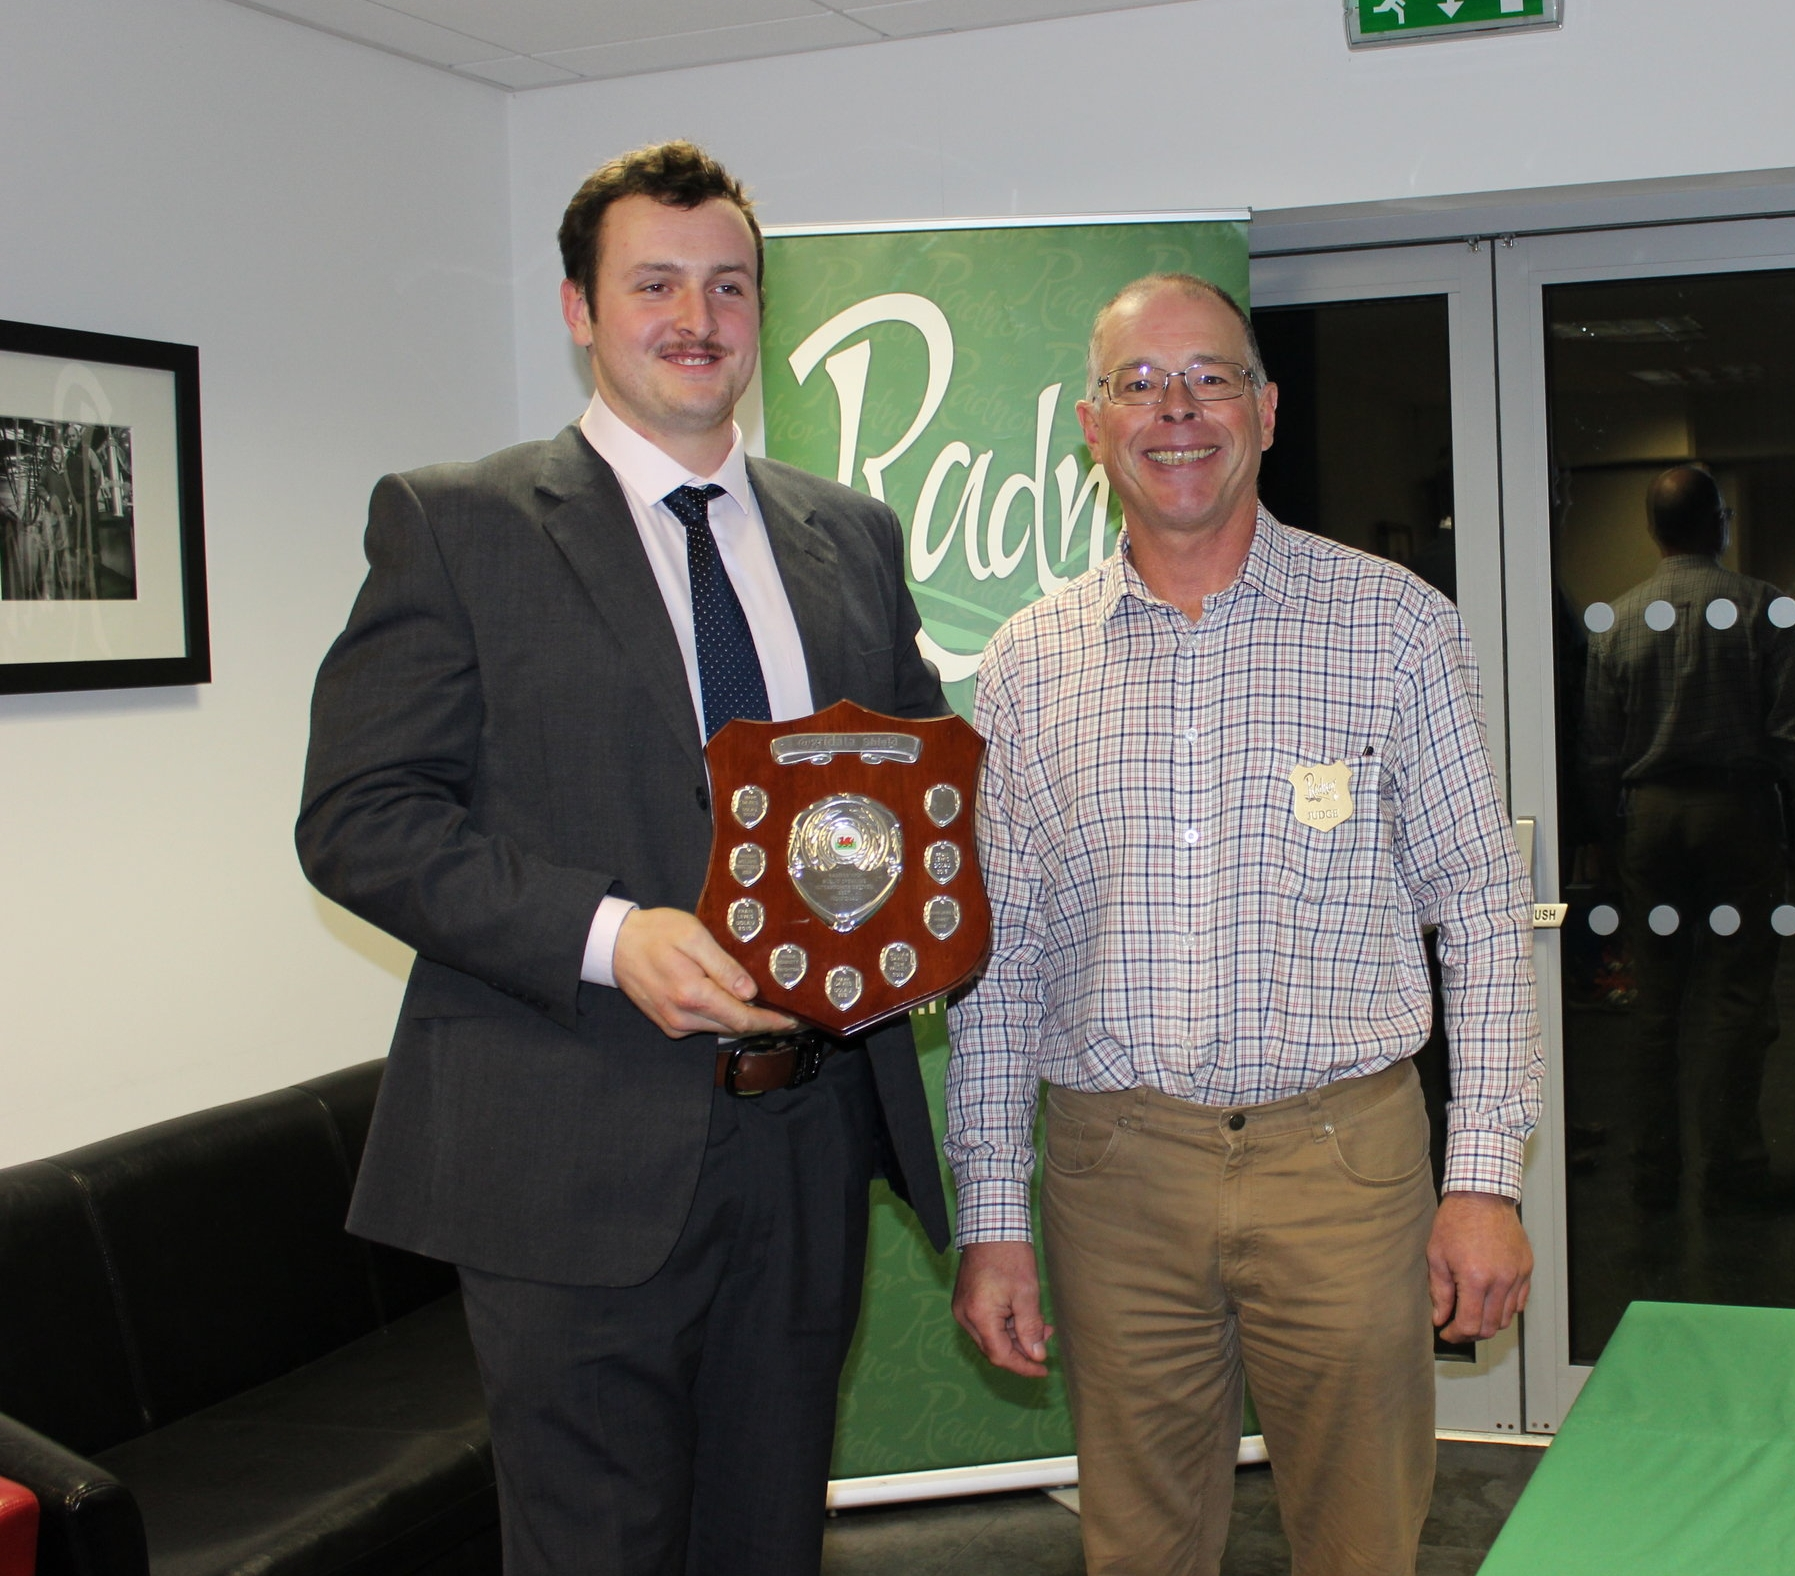 Ted Davies, Presteigne YFC won the Agridata Intermediate Individual Cup and was presented by Judge Mr Ifor Humpreys.